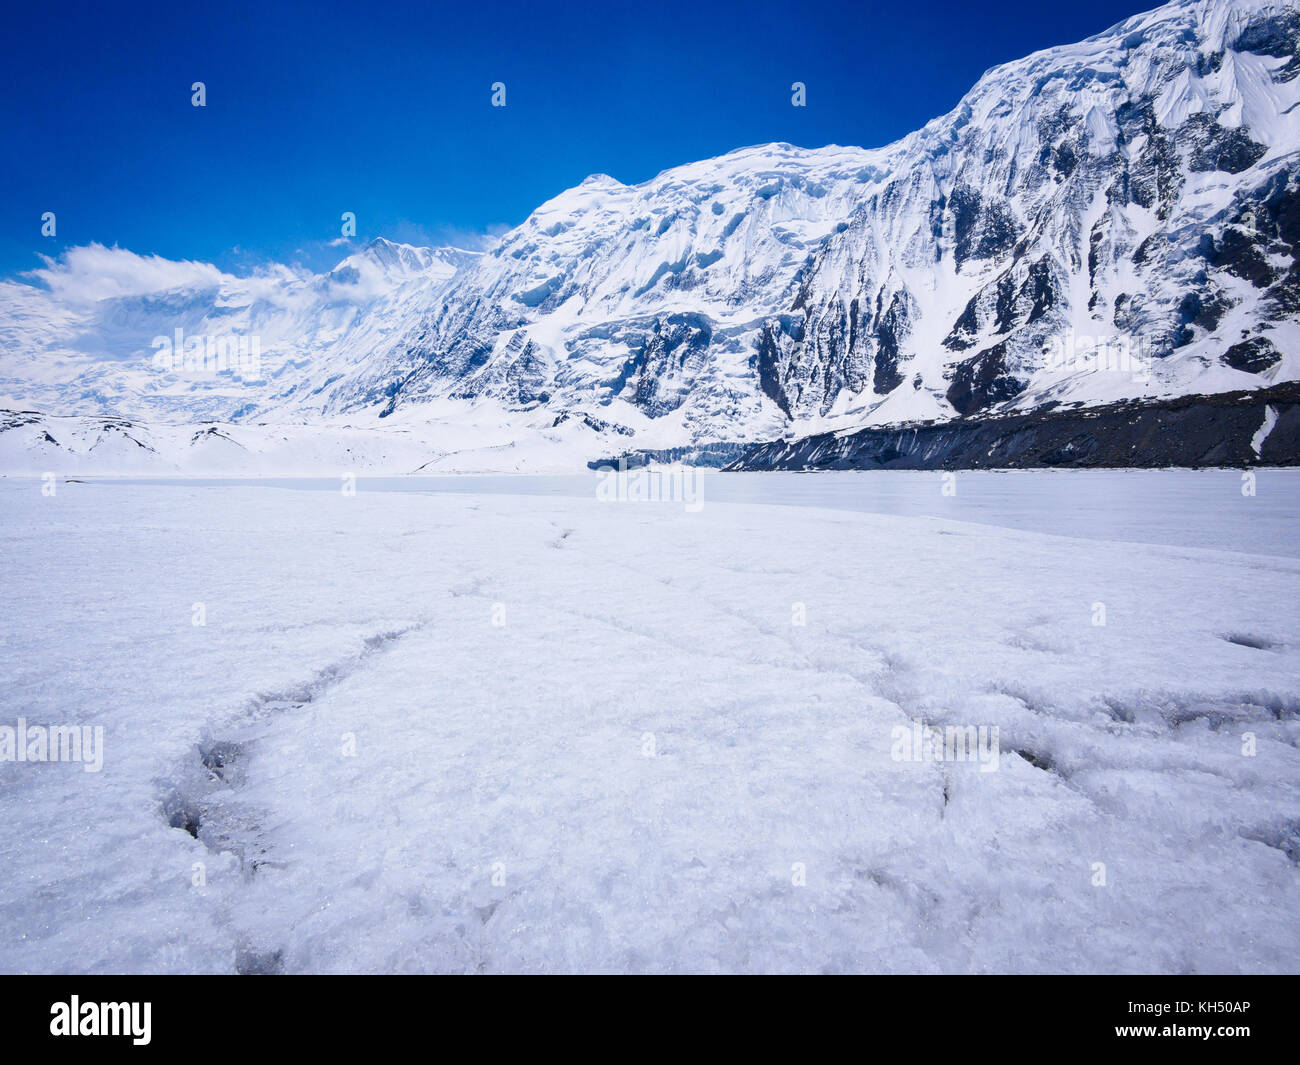 Snowy shore of Tilicho Lake in the Annapurna Himalayas, Nepal - Stock Image